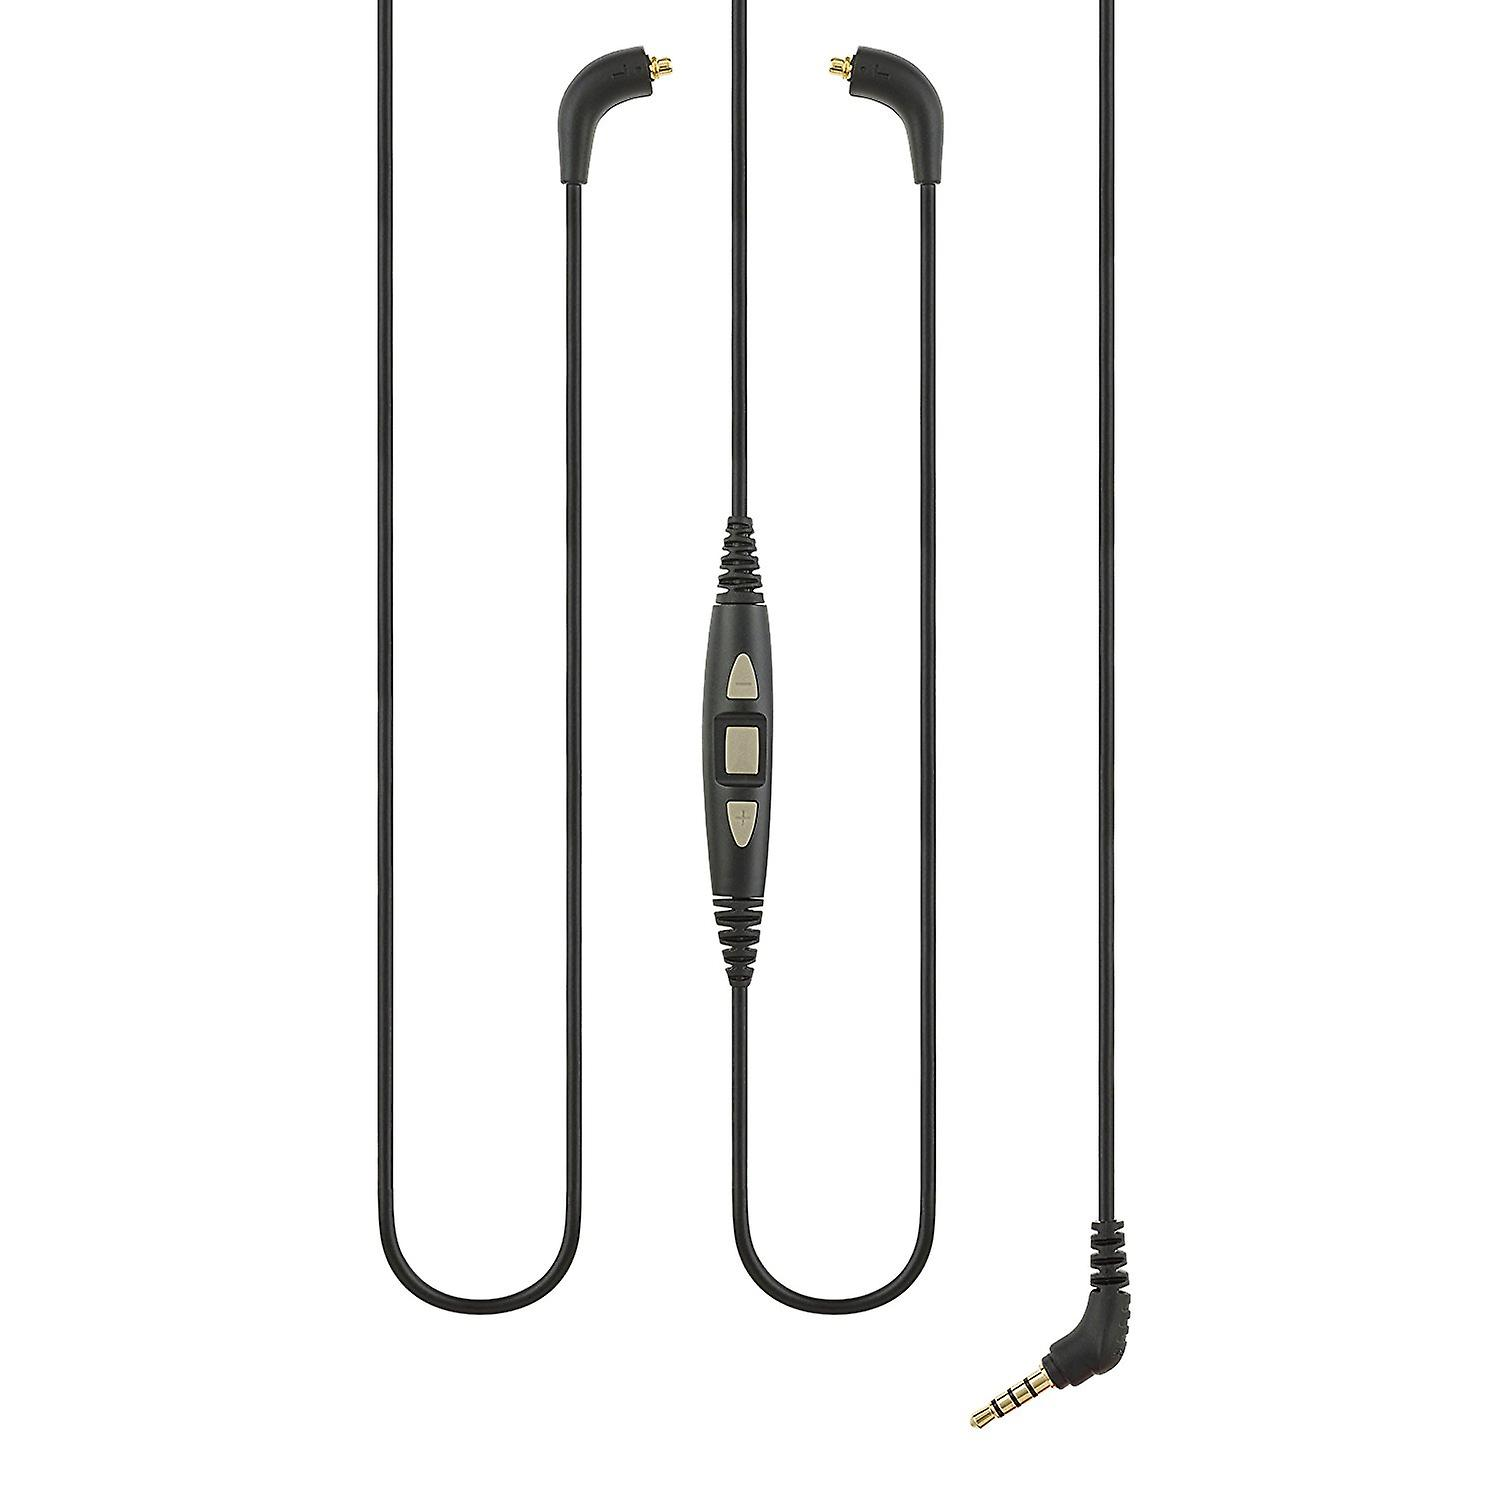 Replacement Shure CBL-M+-K-EFS Audio Cable with In-Line Remote + Mic